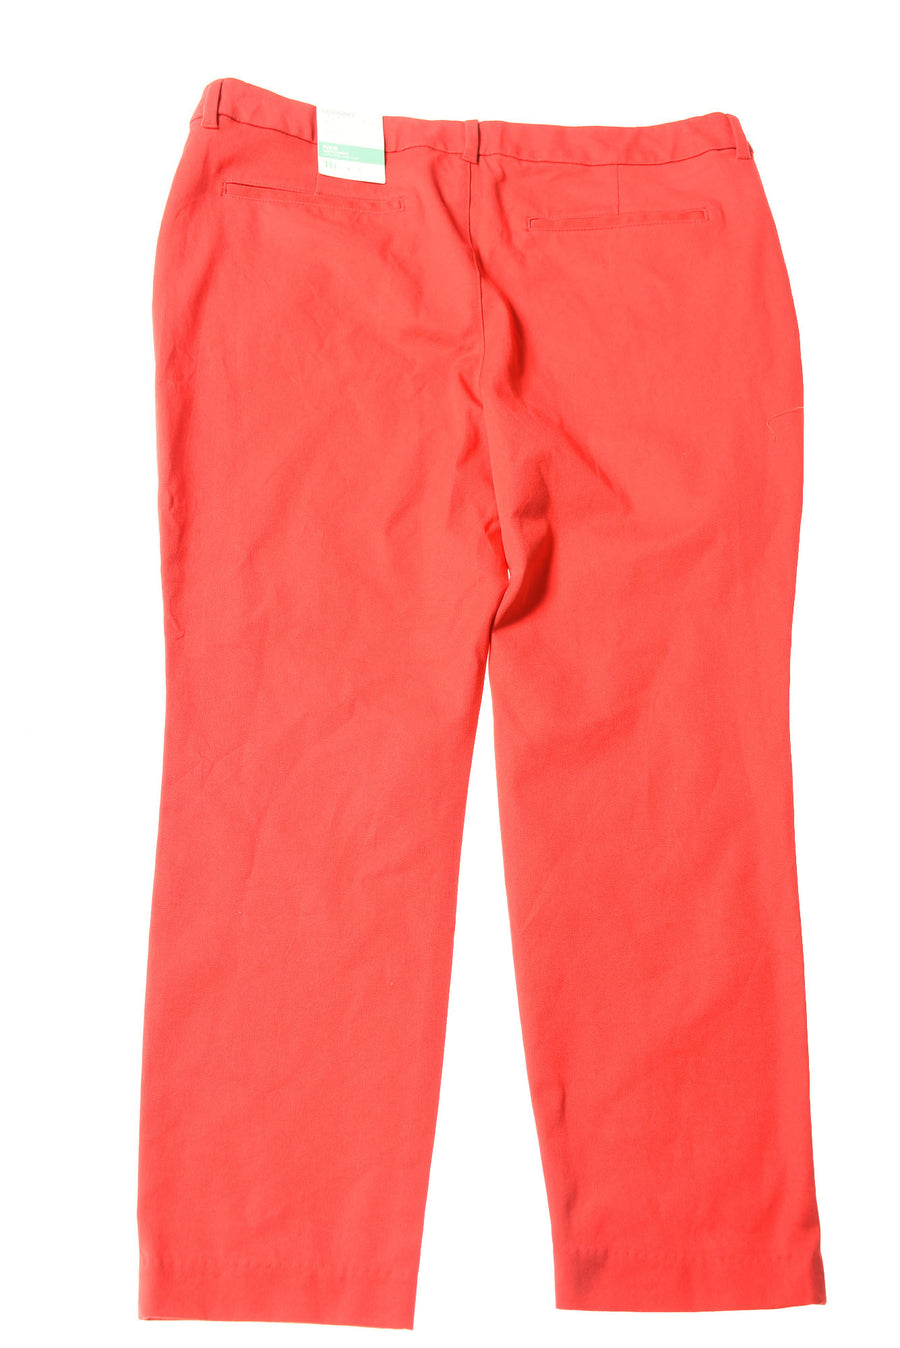 Women's Slacks By Old Navy